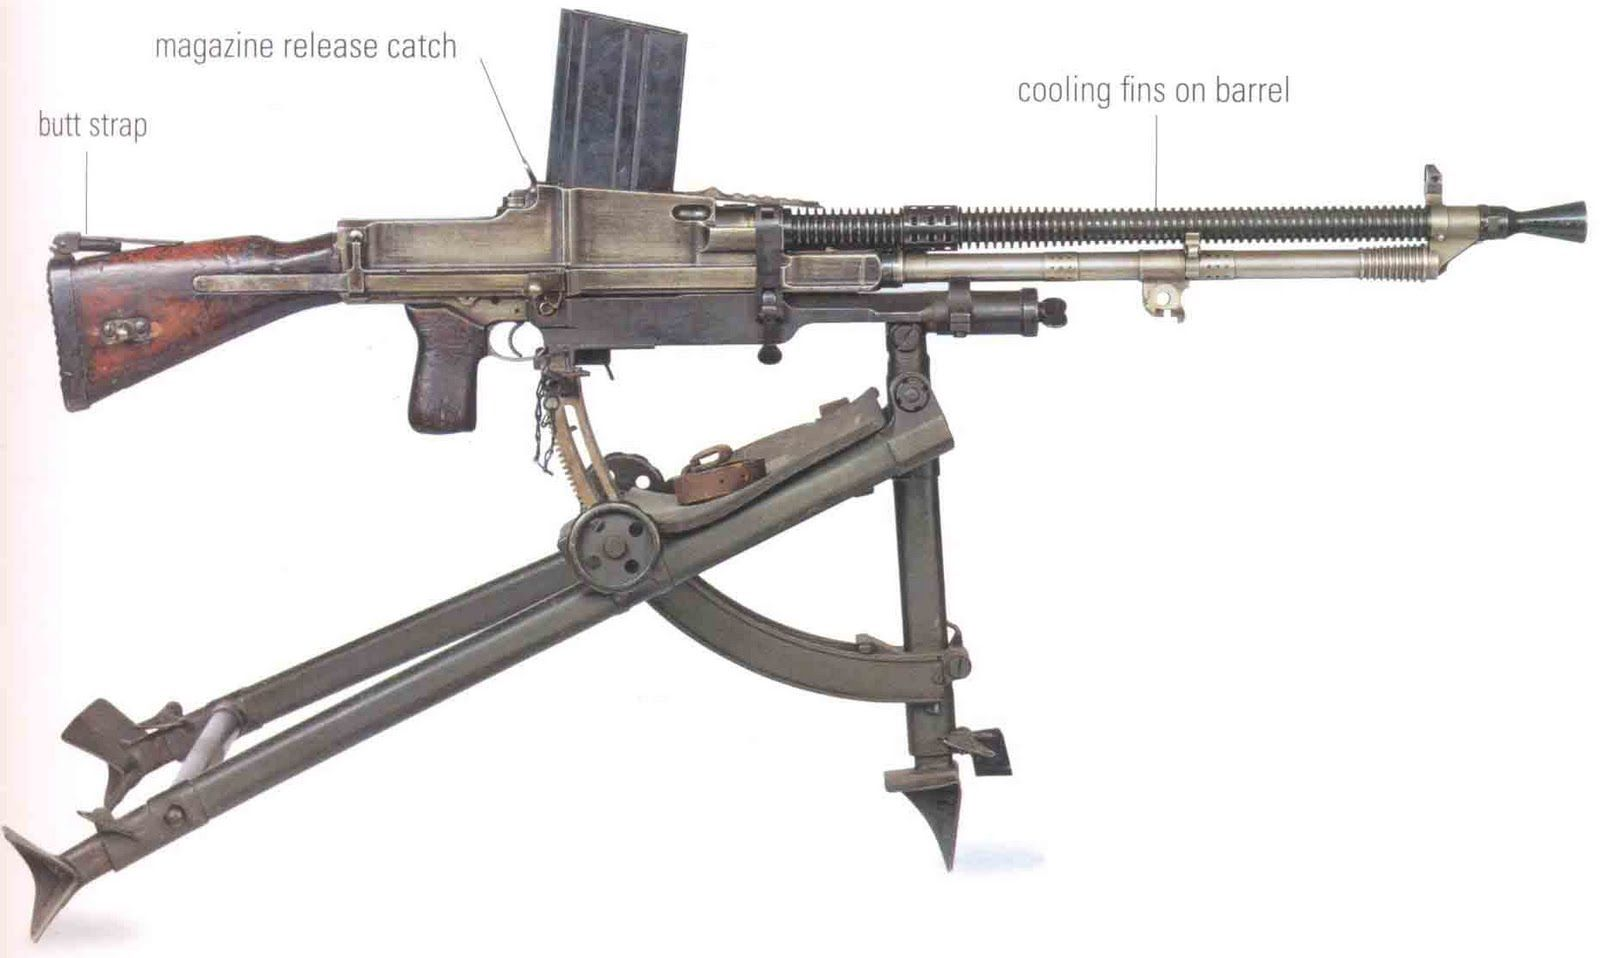 Colt cmg 2 forgotten weapons weird weapons pinterest colt cmg 2 forgotten weapons weird weapons pinterest weapons light machine gun and guns pooptronica Images